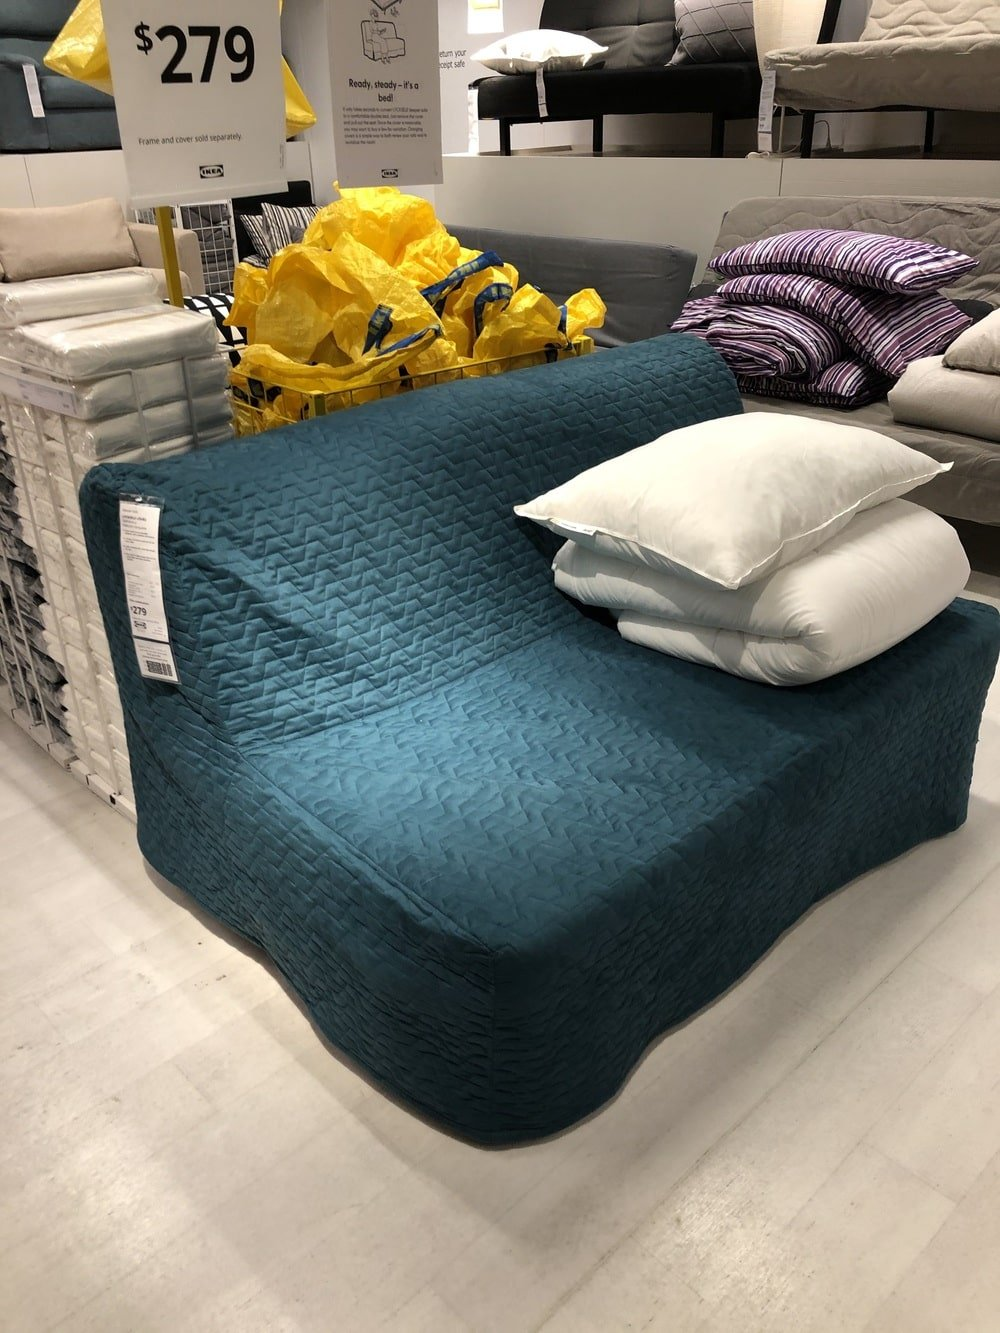 Picture of: Our Mega Ikea Futon And Sofa Bed Reviews Guide Ikea Field Trip Time